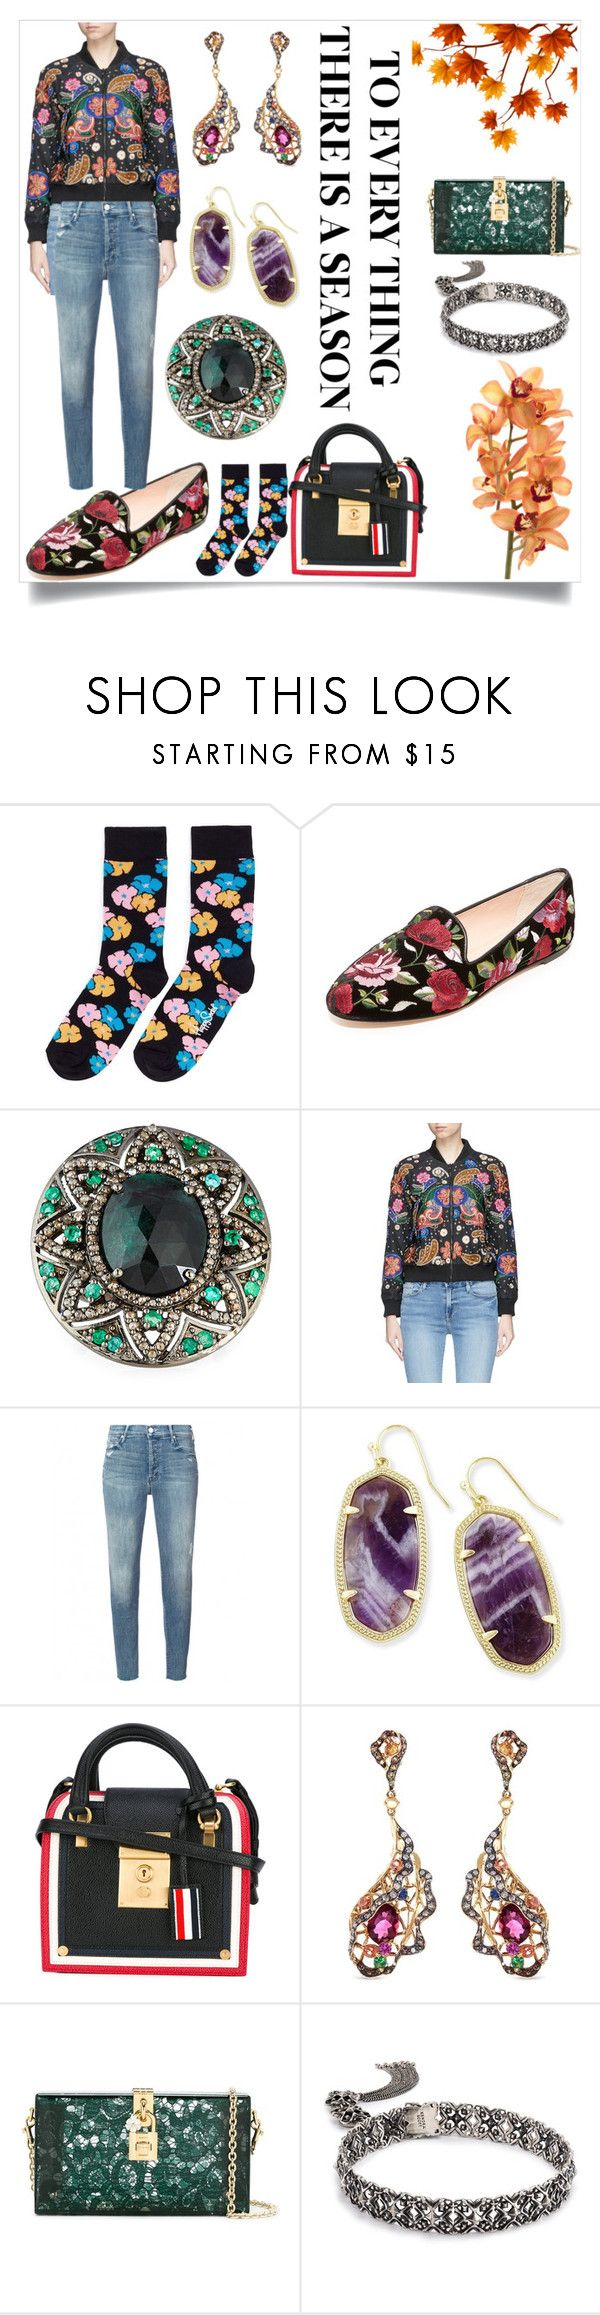 """""""Floral Defines the fashion"""" by camry-brynn ❤ liked on Polyvore featuring Happy Socks, Kate Spade, Bavna, Alice + Olivia, Mother, Kendra Scott, Thom Browne, Wendy Yue, Dolce&Gabbana and vintage"""